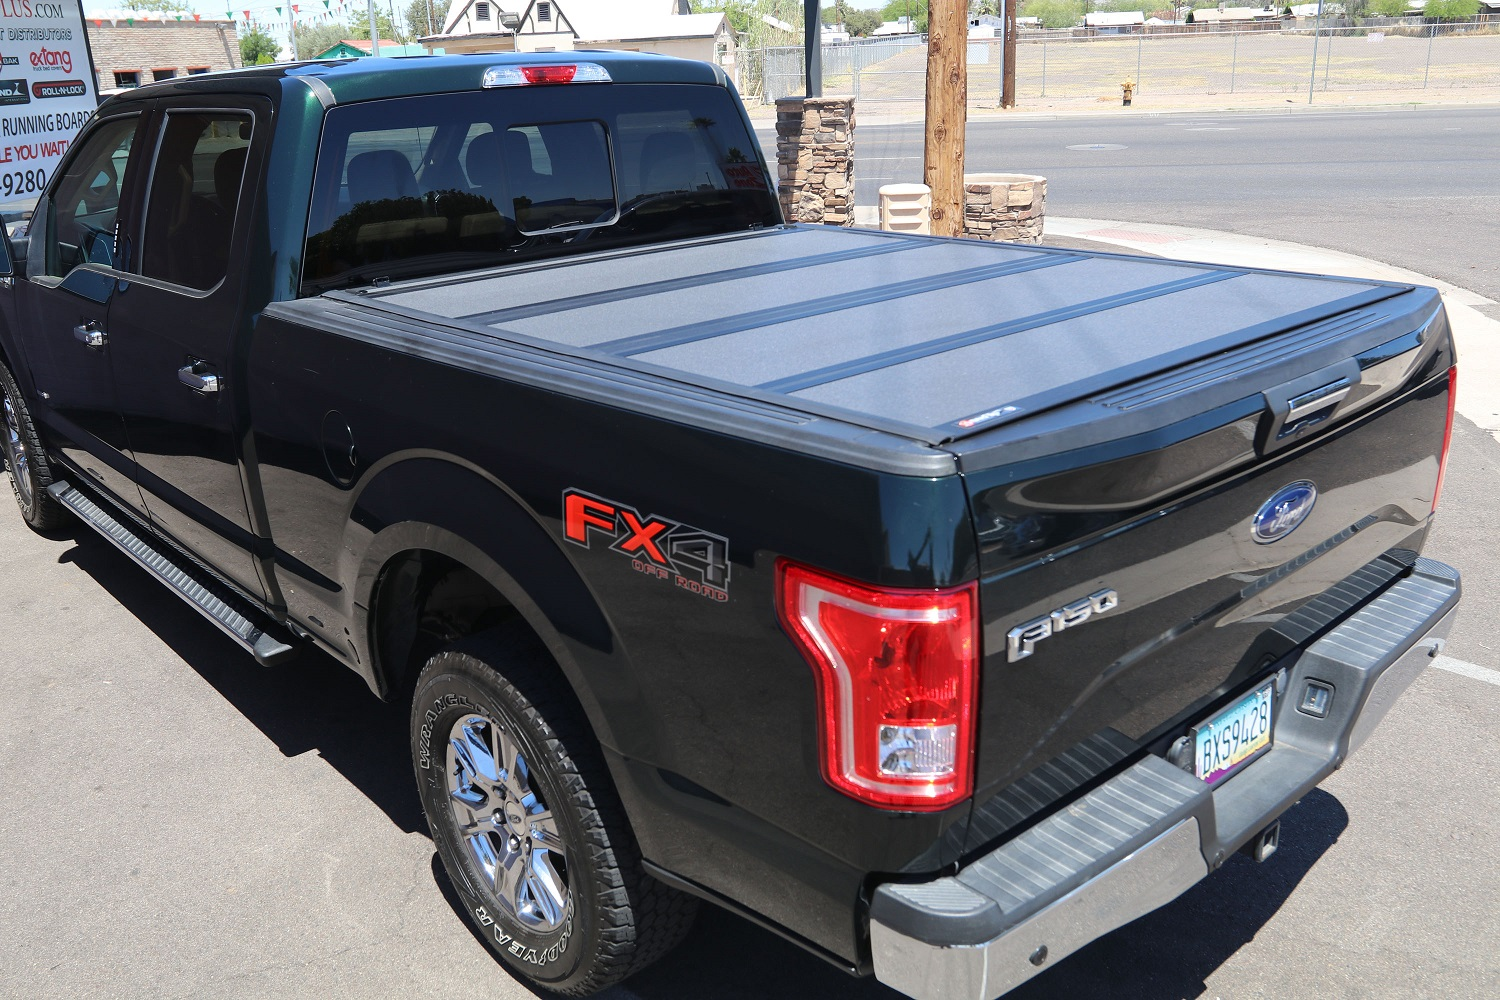 FORD F150 BAKFLIP MX4 6.5 BED